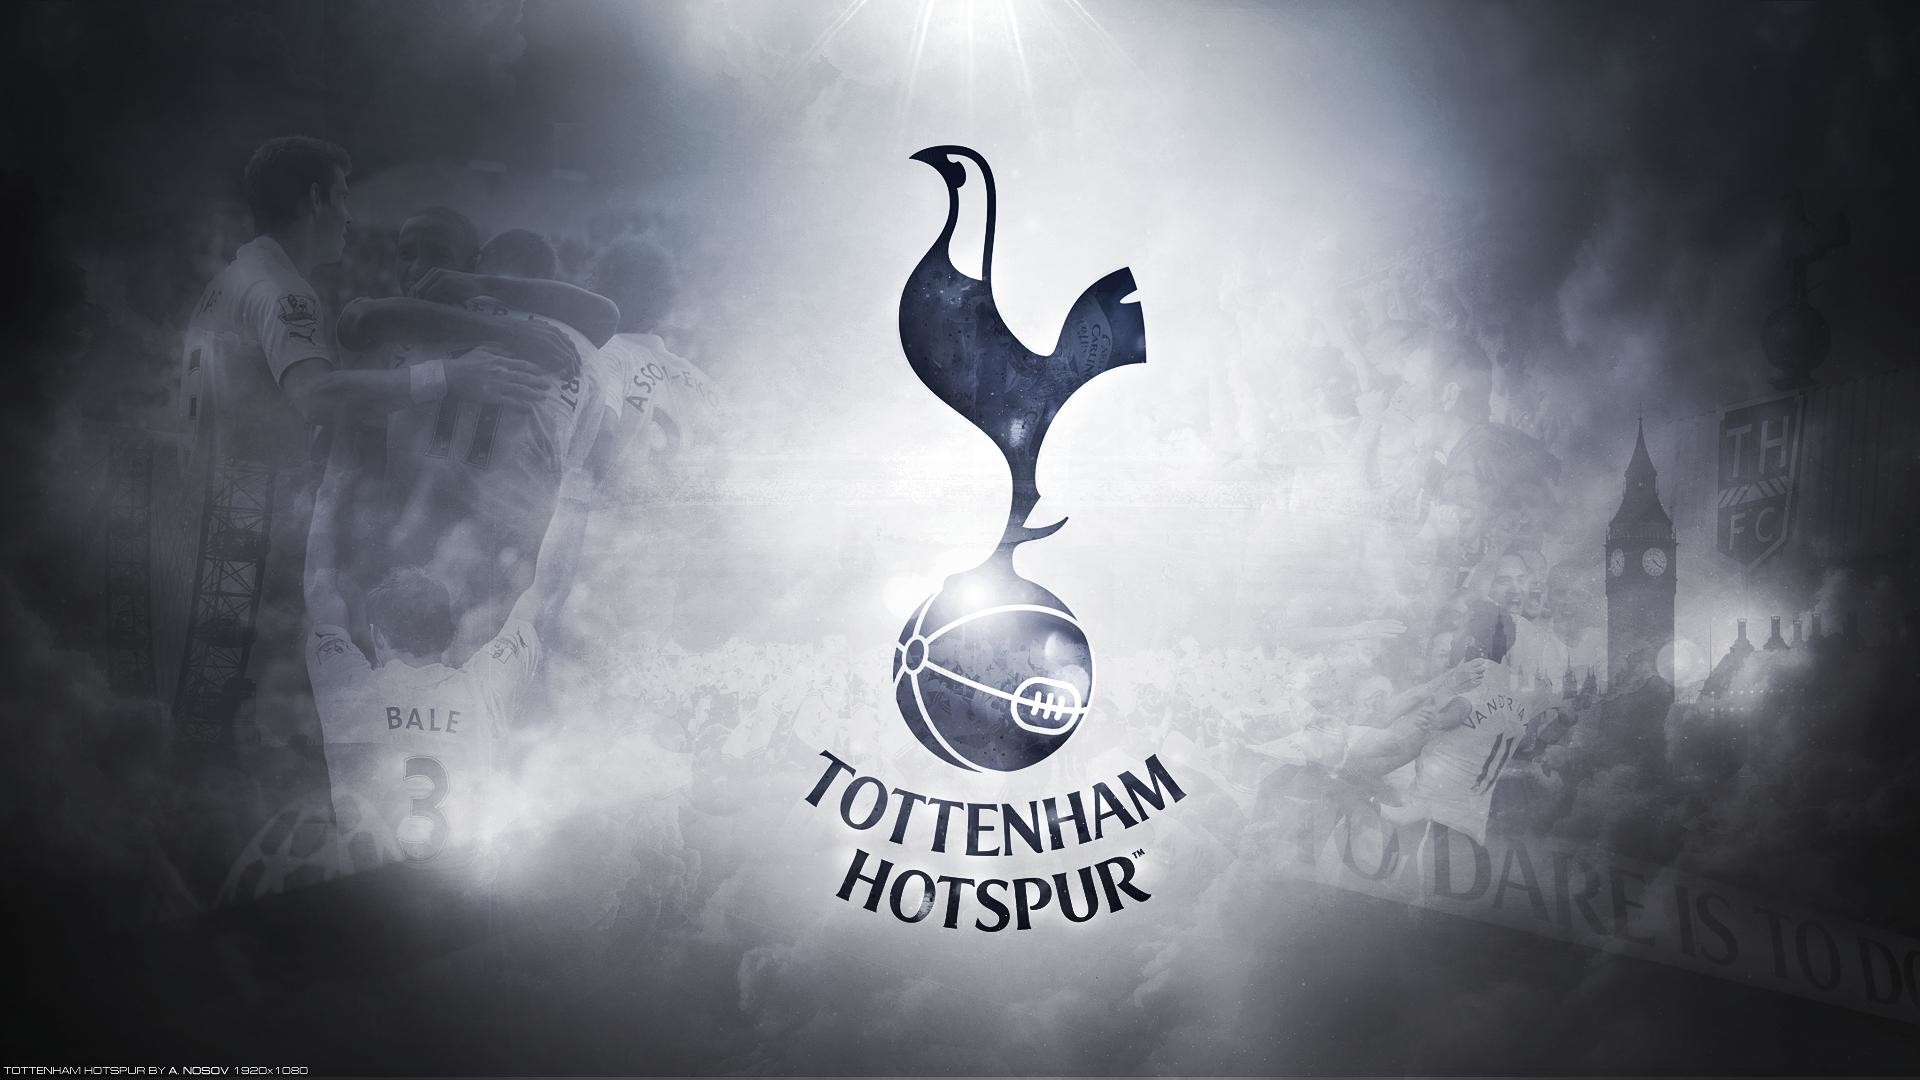 Tottenham hotspur hd wallpaper 74 images for Where to get wallpaper